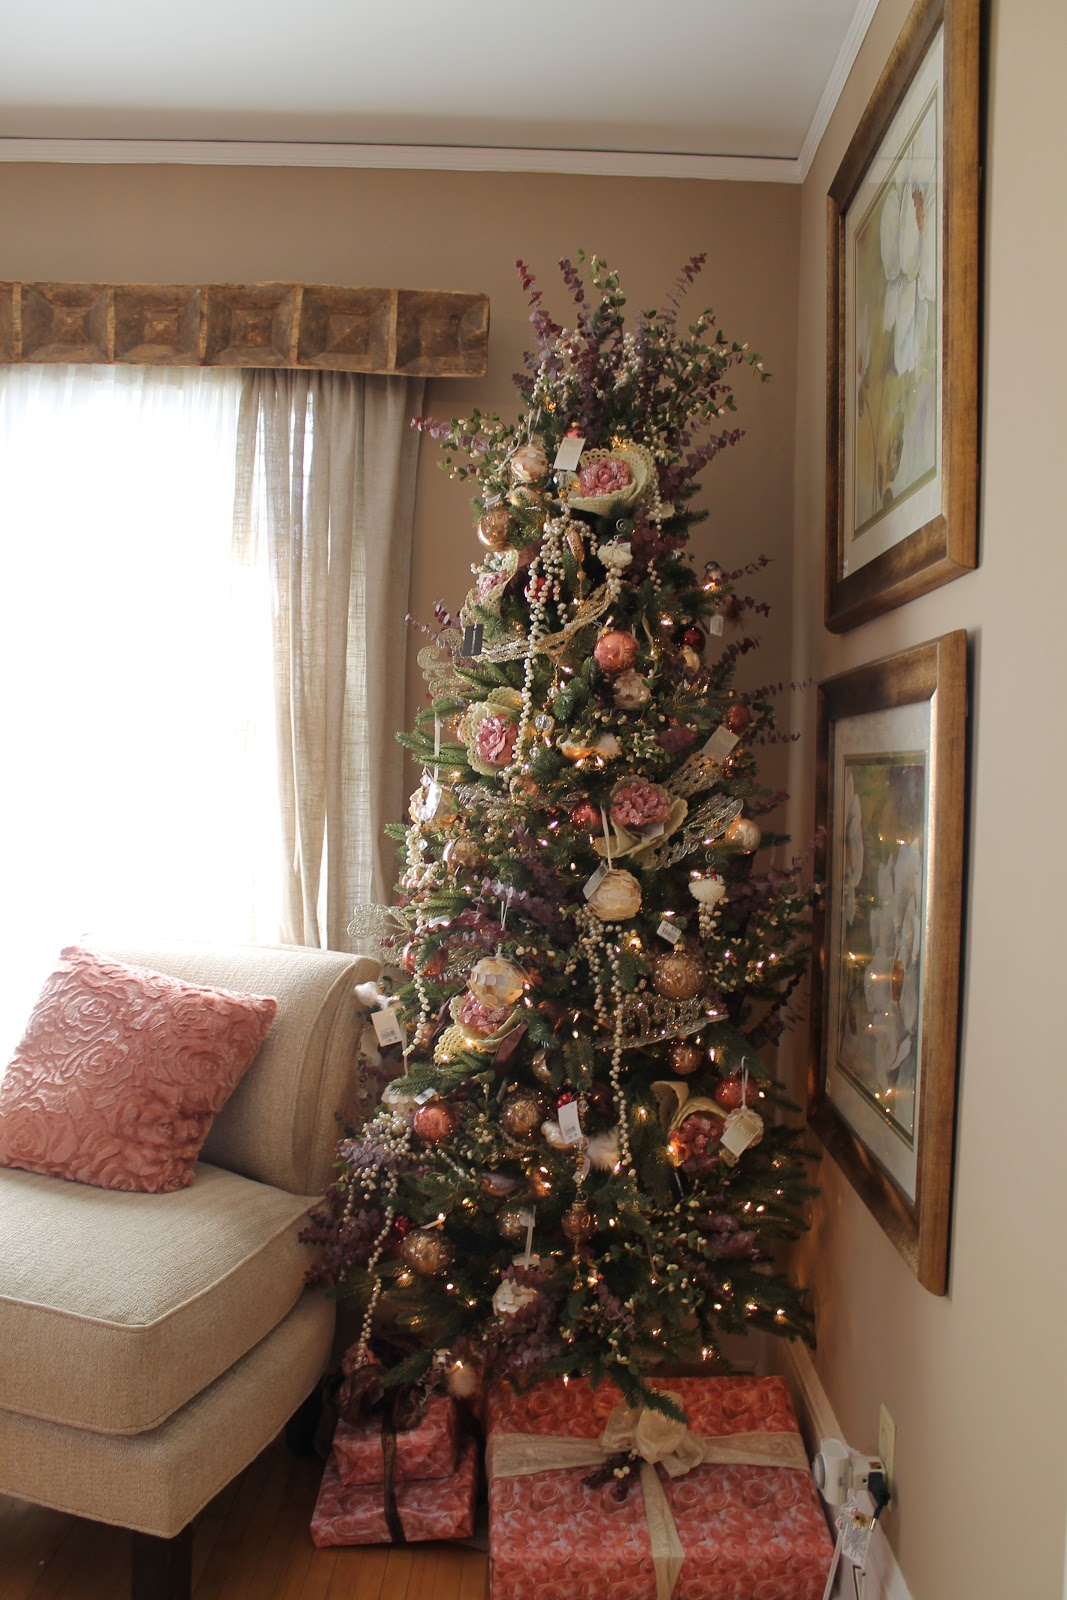 Christmas Decorating Ideas For Sofa Table Reupholstery Cost Edinburgh Hammers And High Heels: Holiday 2012 Idea House: Cozy Up ...